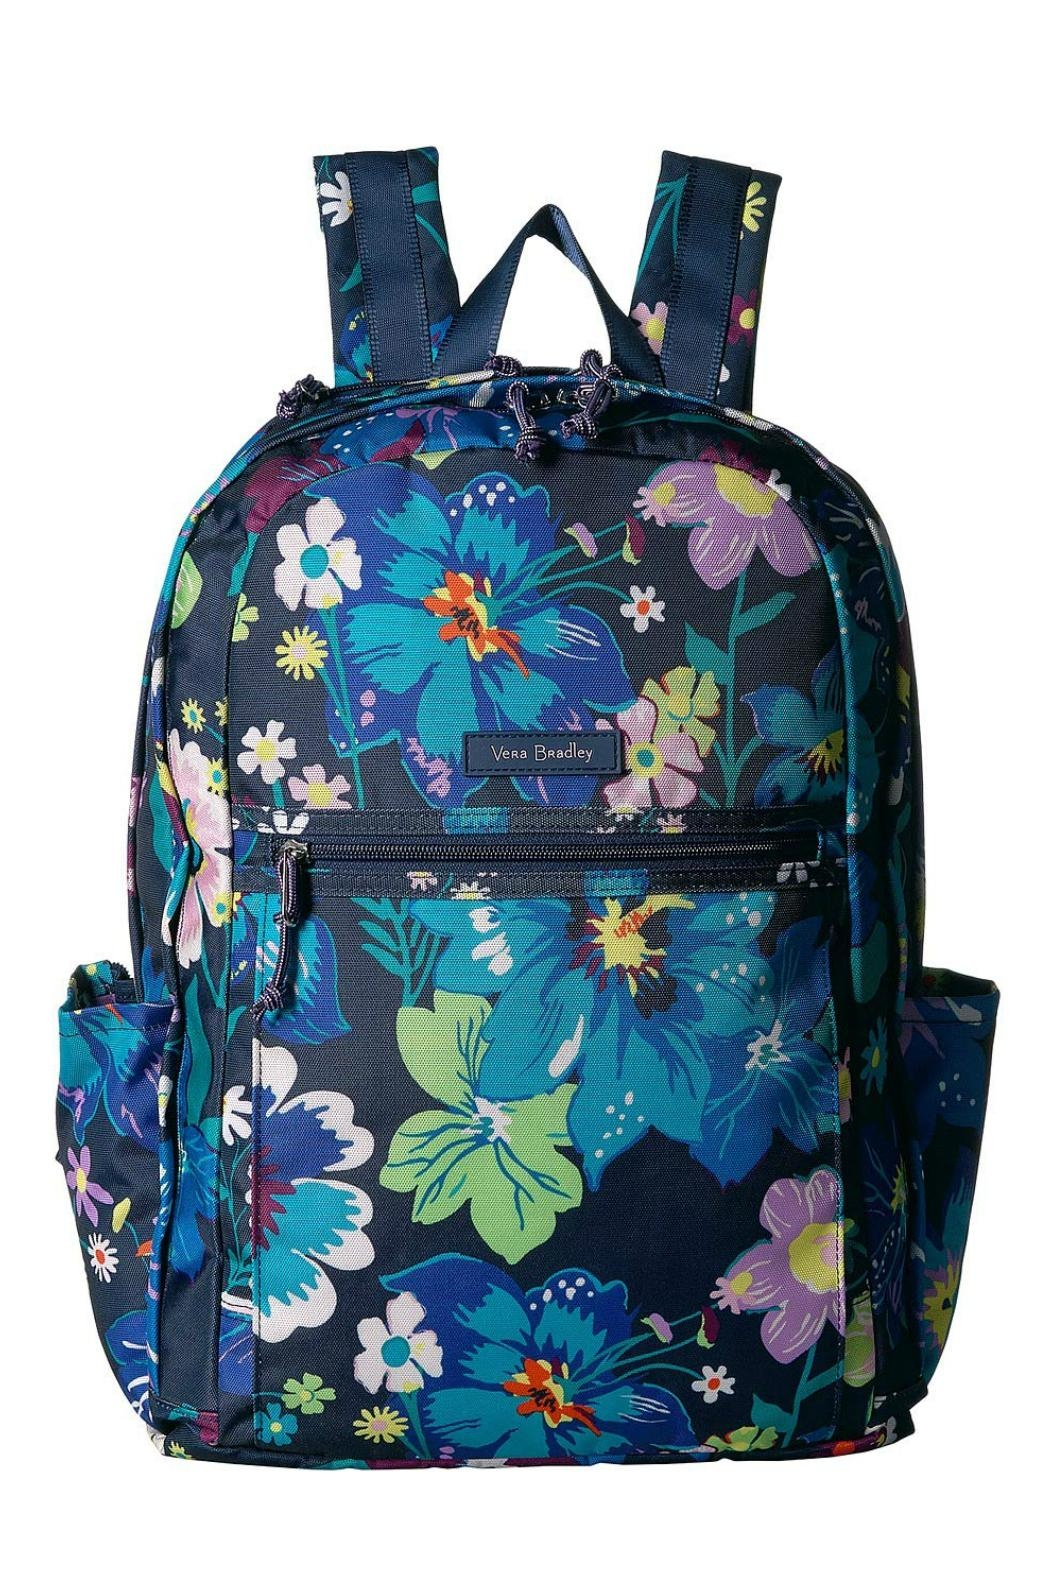 Vera Bradley Firefly Garden Grand-Backpack - Main Image